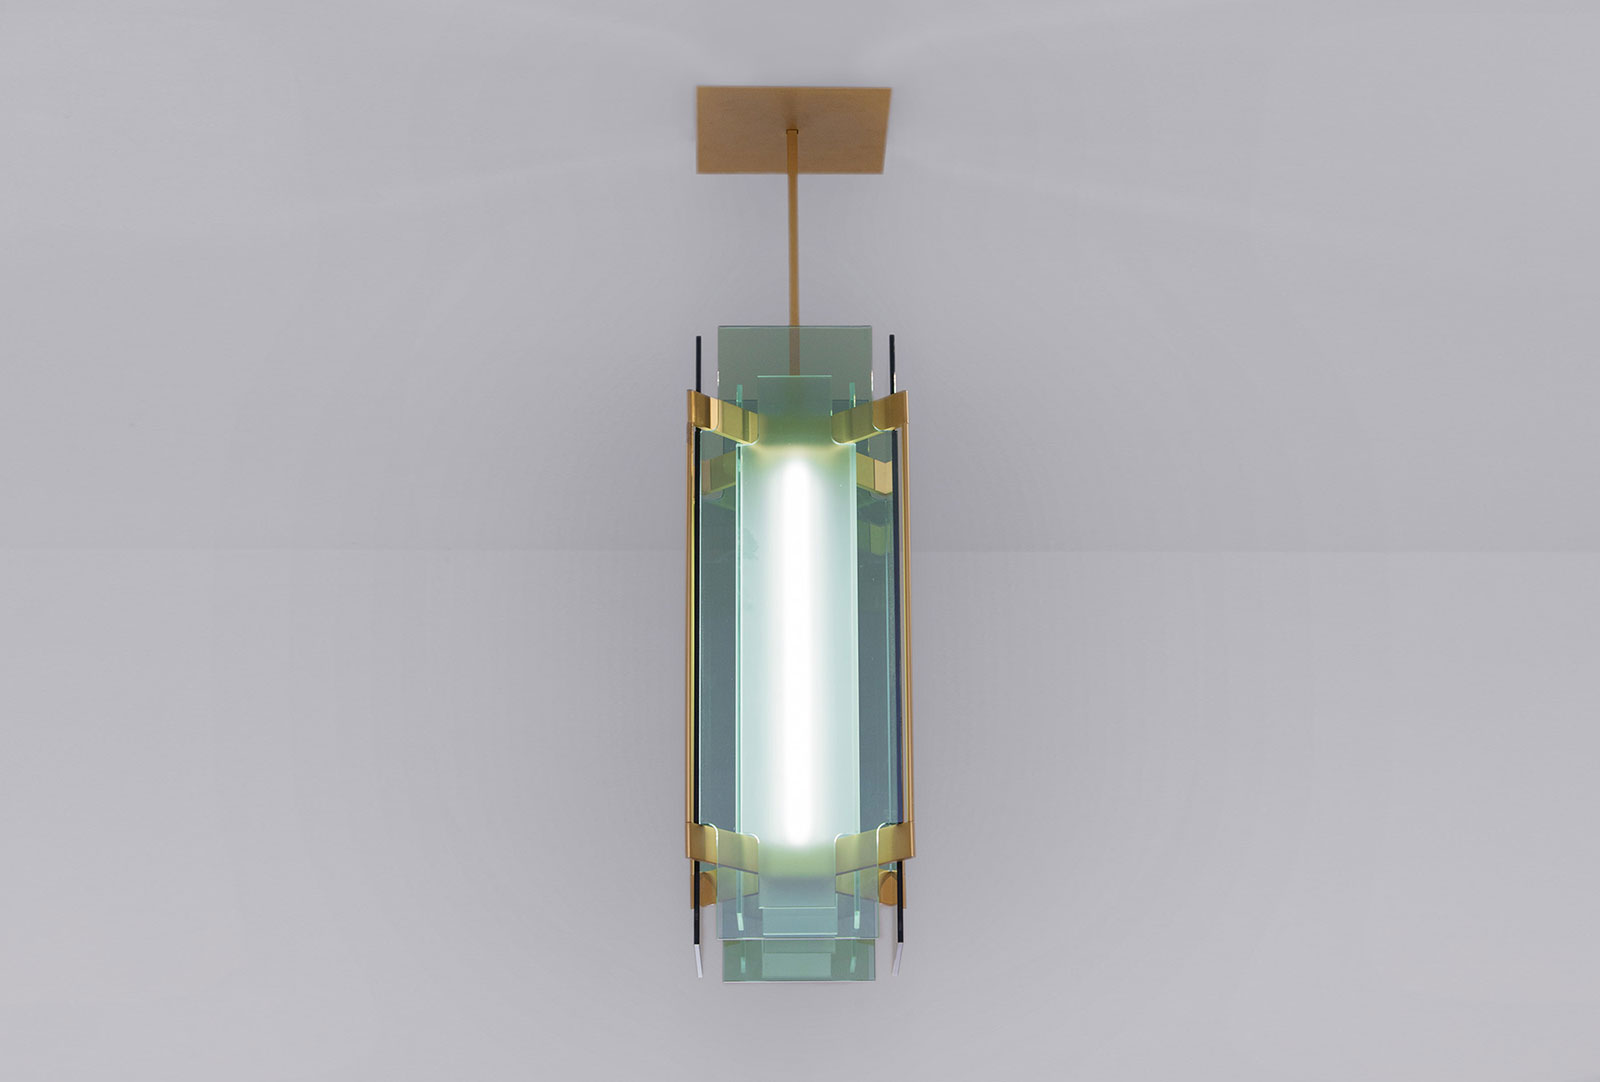 Livio Lamp designed by Marco Bevilacqua reinterpreting today some distinctive signs of Pietro Chiesa and Max Ingrand for Fontana Arte, using the most advanced technologies currently available